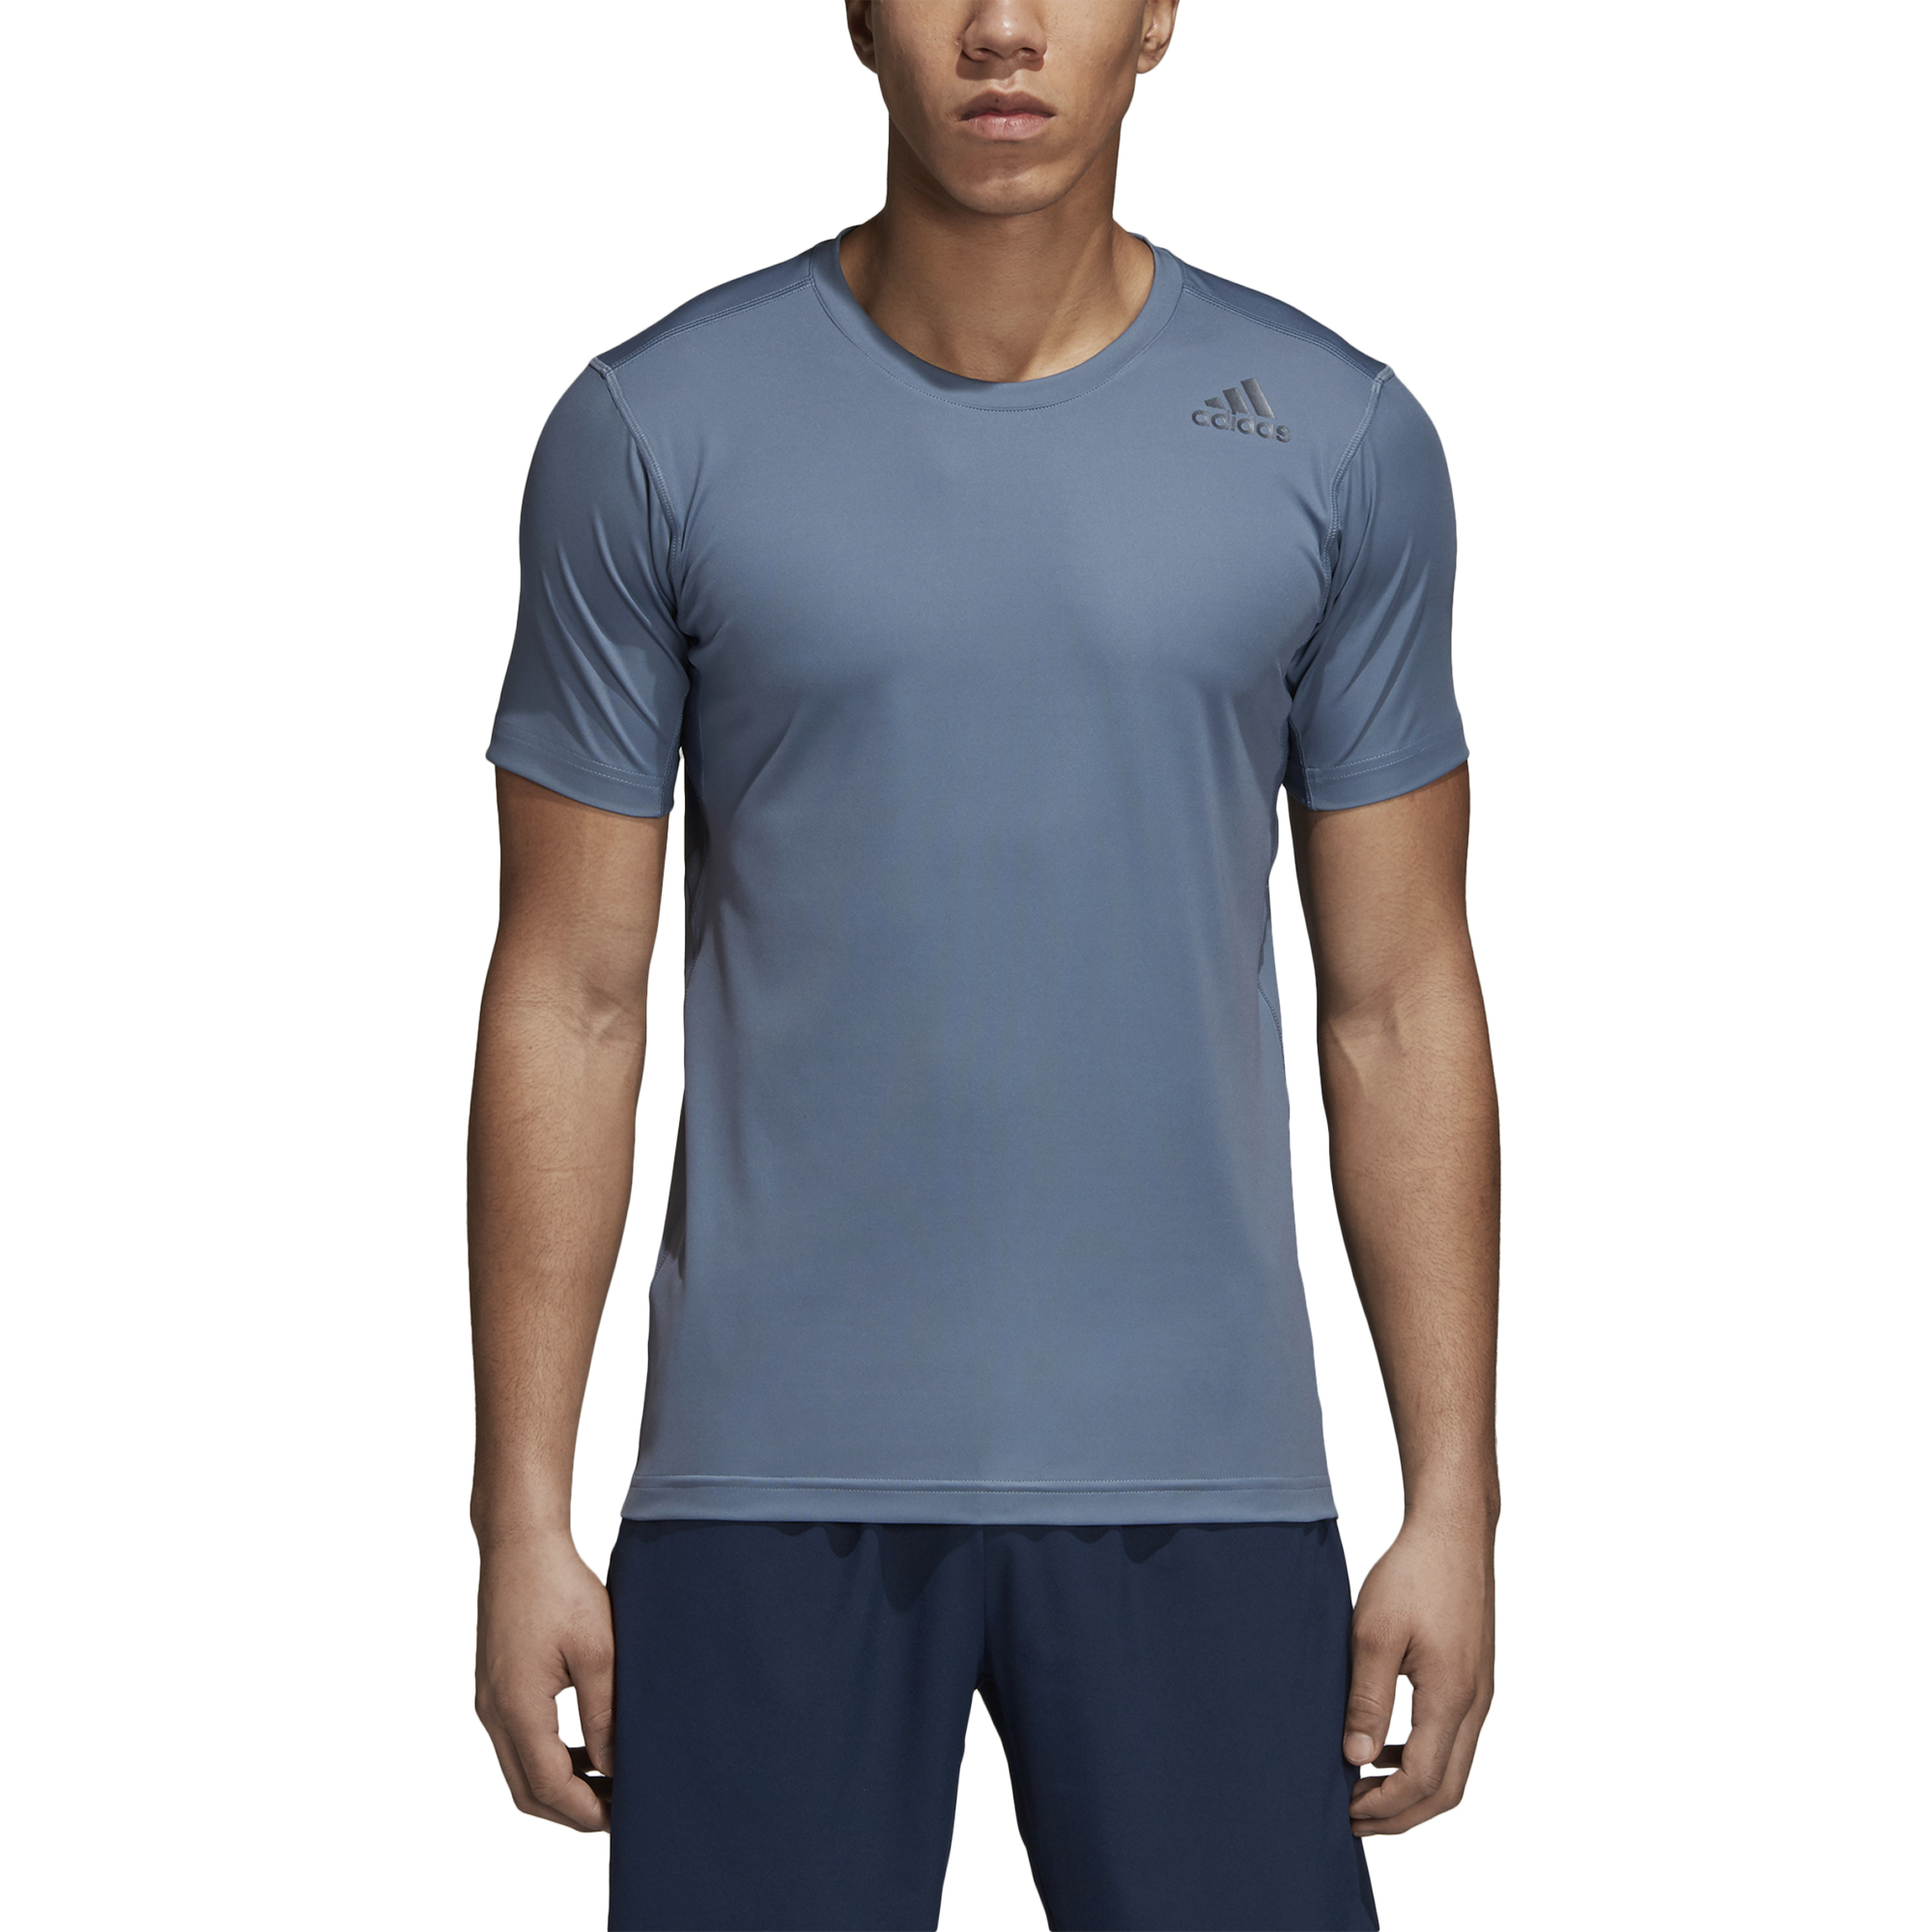 adidas Freelift Climalite Fitted T Sports et Loisirs T